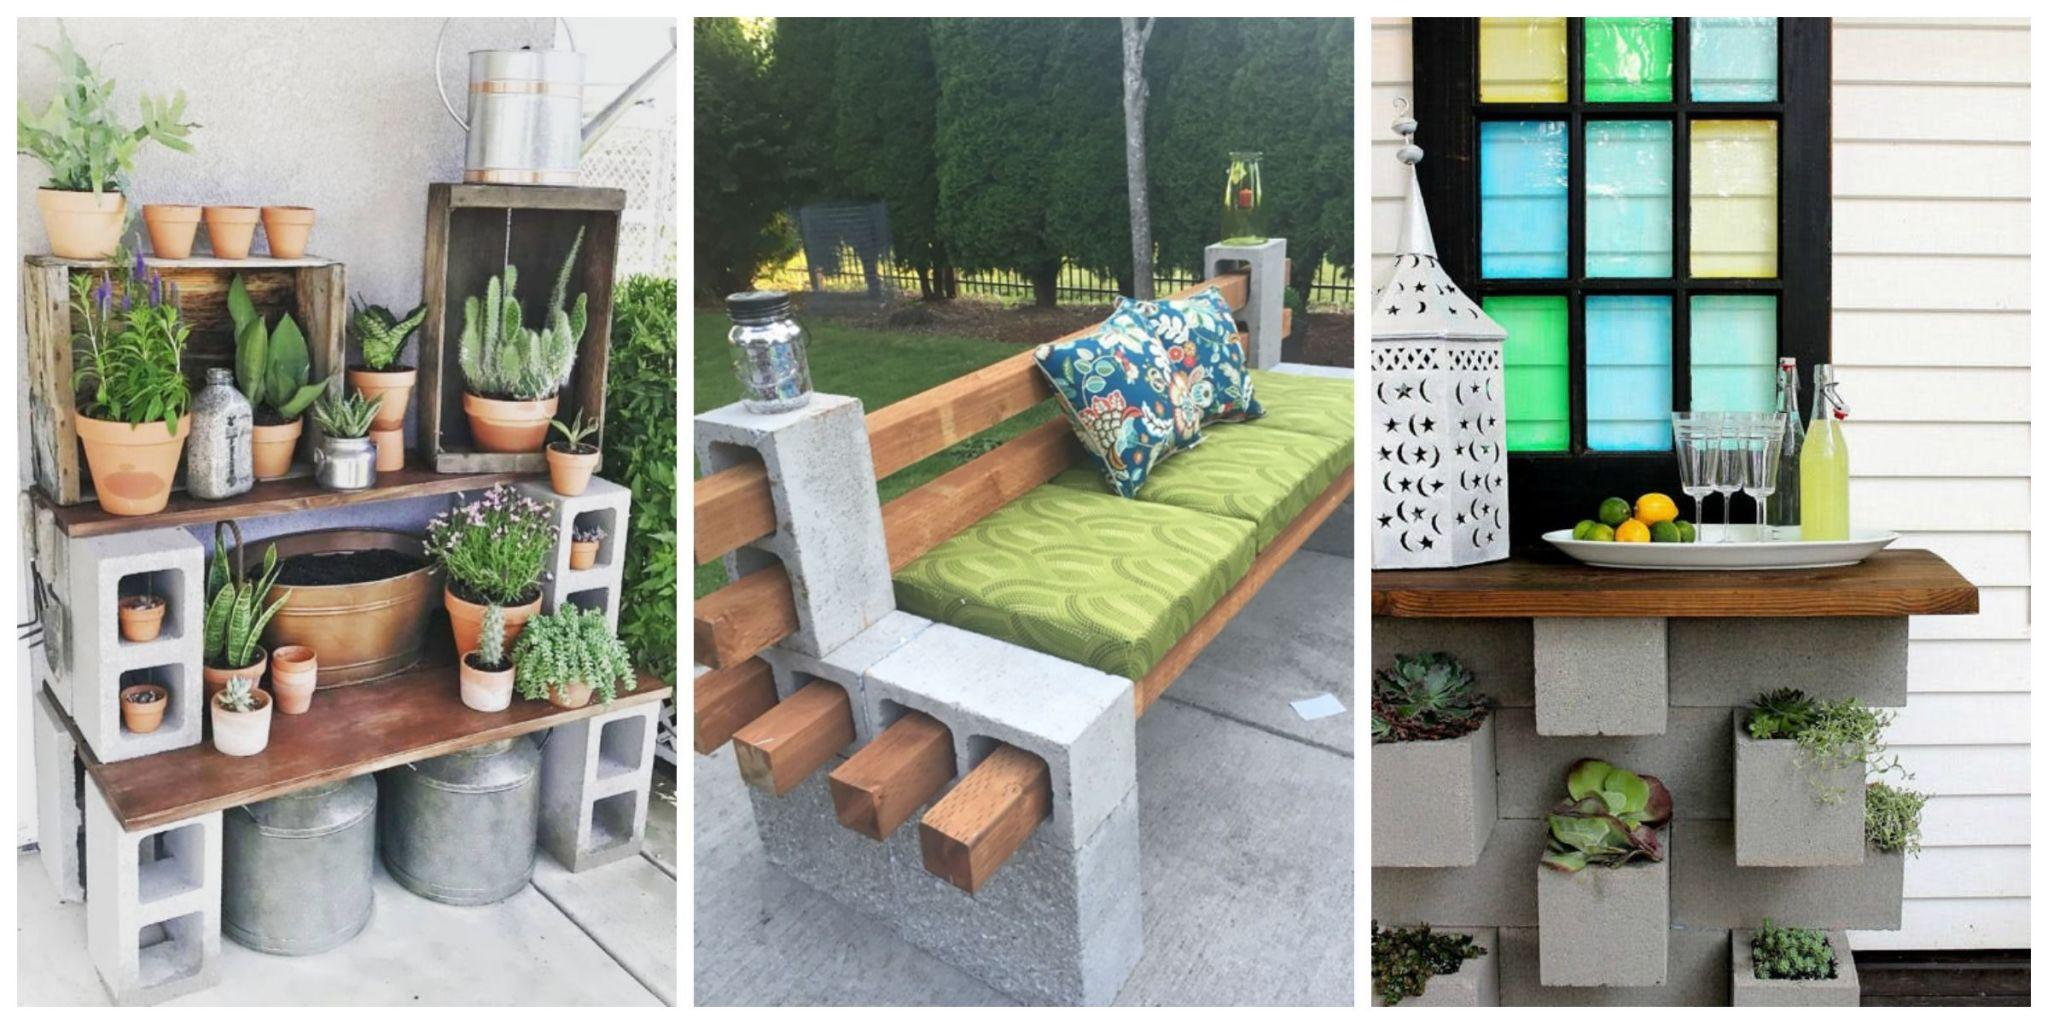 The Cool Thing People Are Doing With Cinder Blocks In